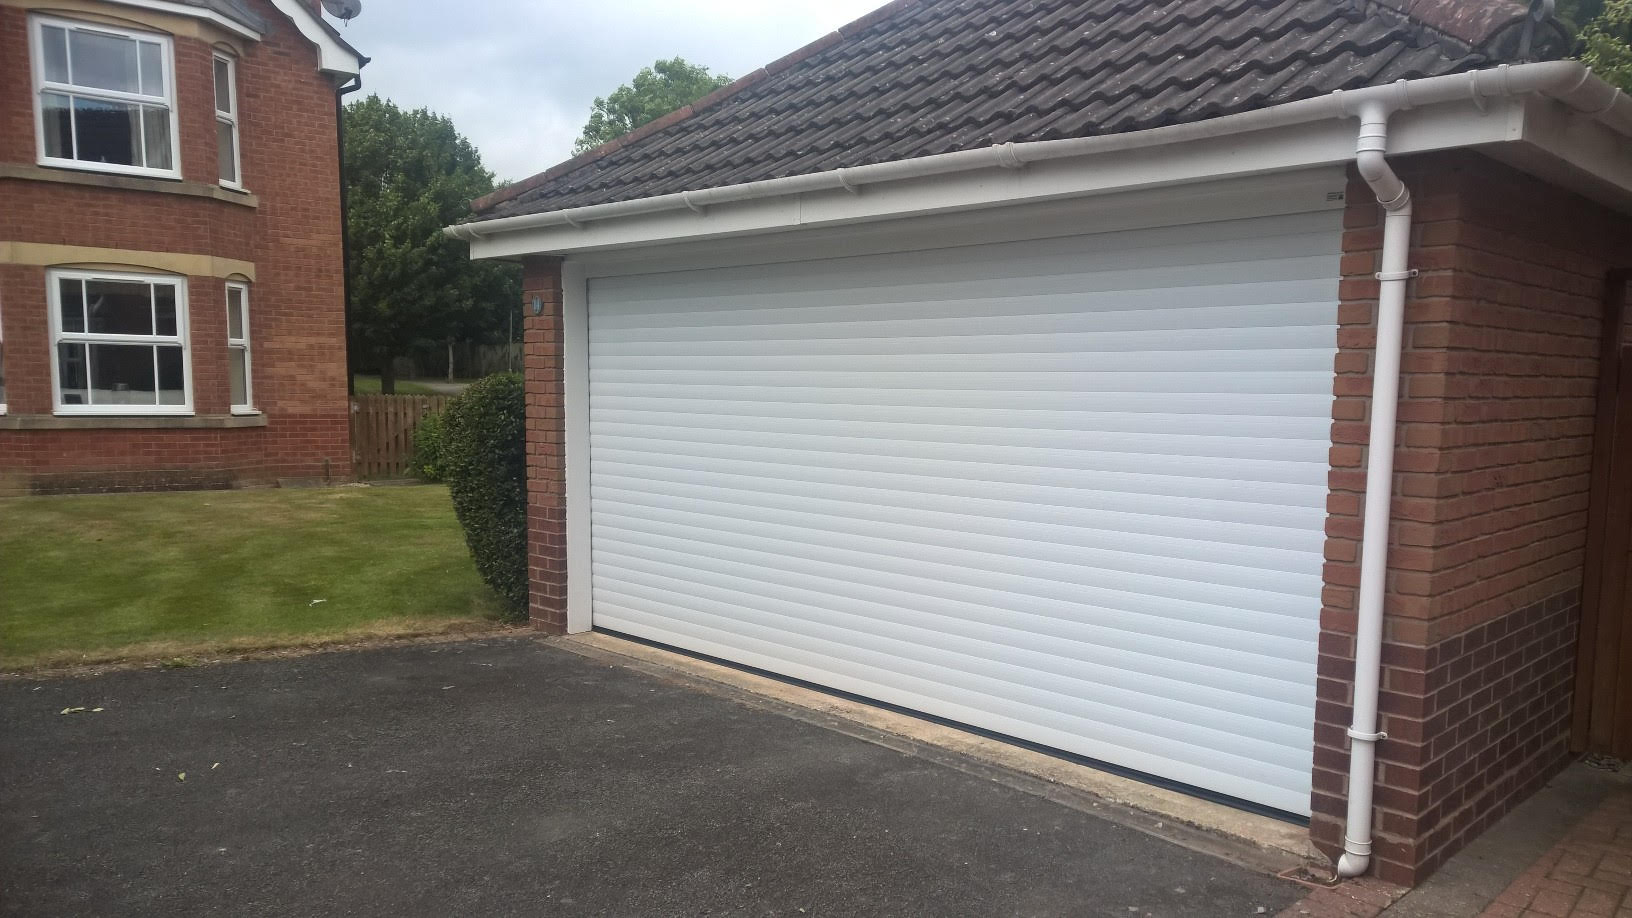 Conversion From Two Single Doors To One Double Garage Door. Modern Doors Miami. Commercial Entrance Doors. Door County Wis. 16 Ft Garage Door. Garage Doors Chicago. Valley Window And Door. Replacing Garage Door Springs. Garages For Rent In Ma